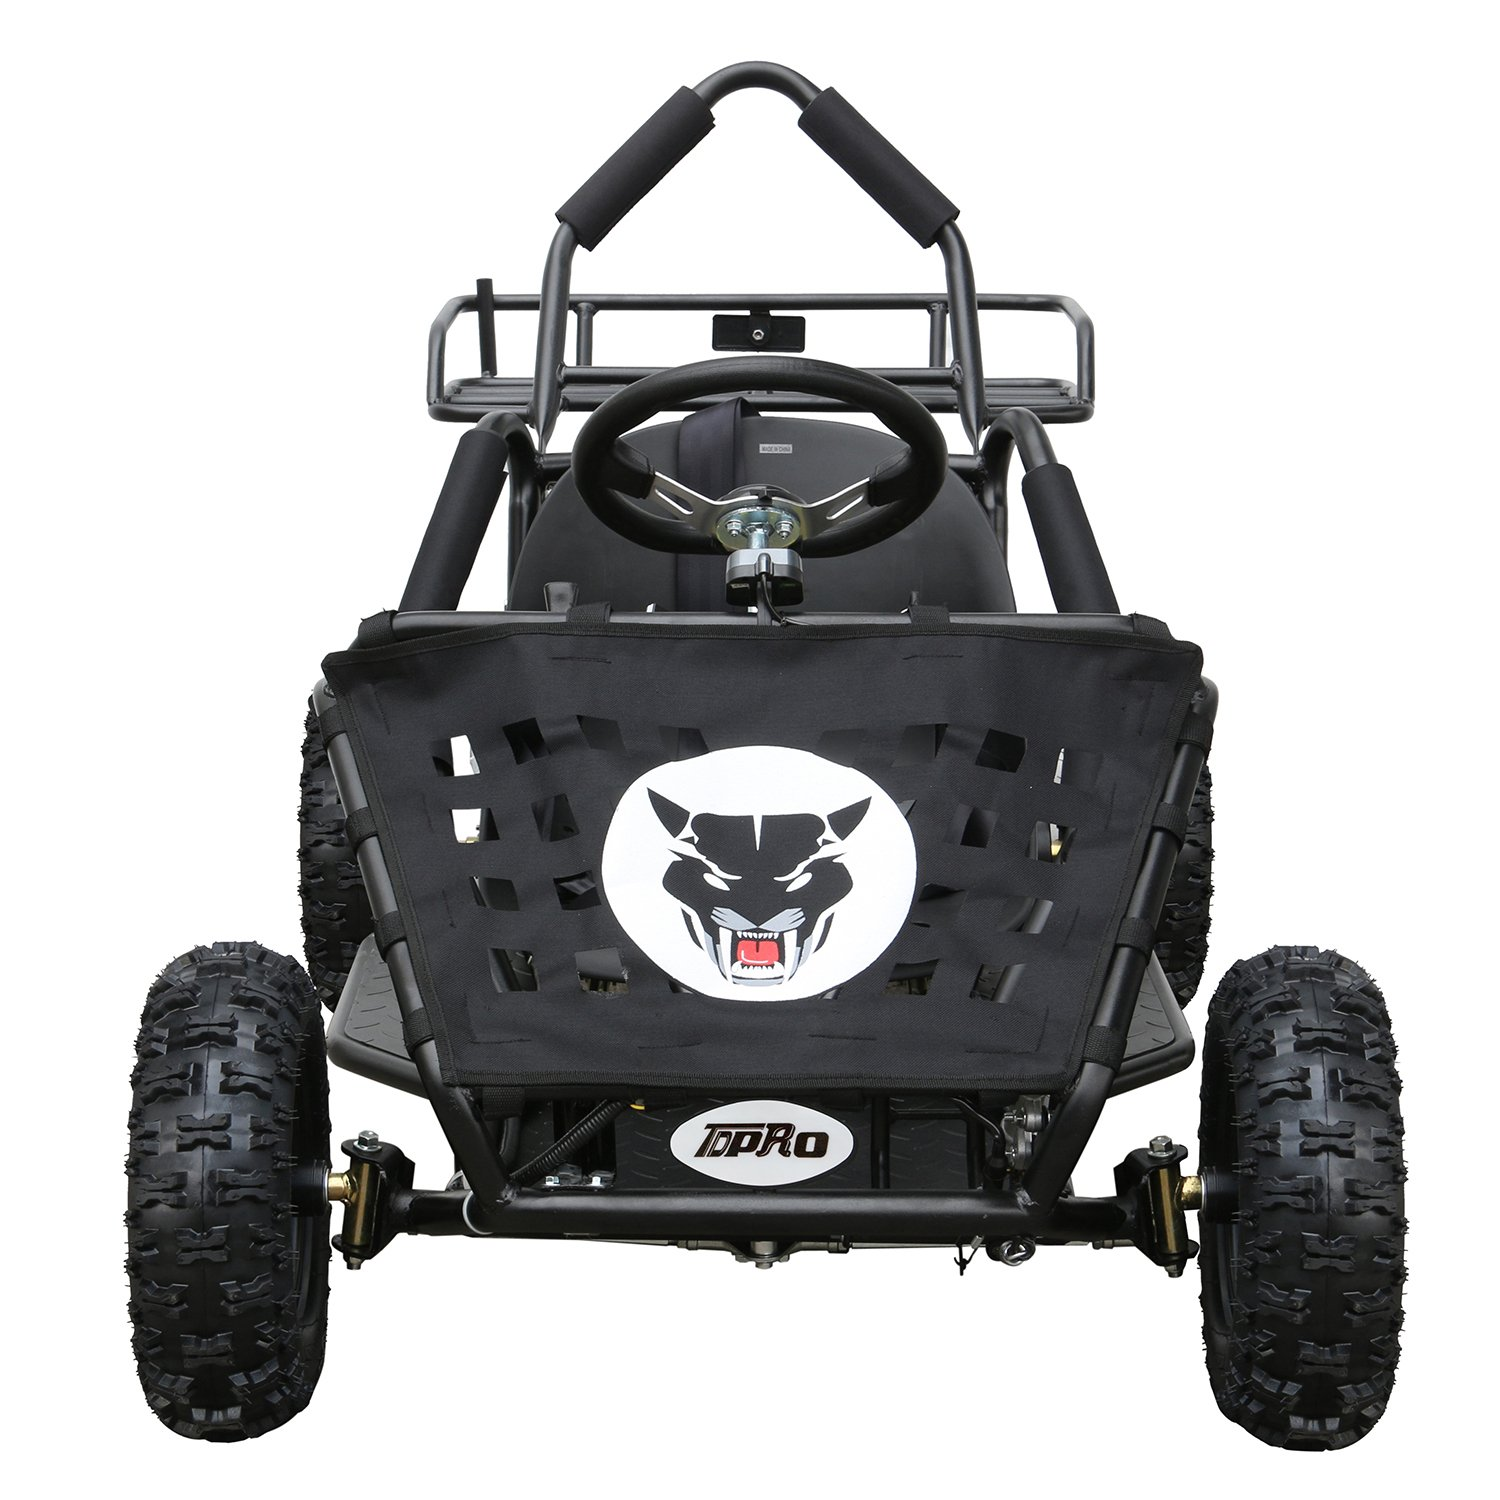 JCMOTO Electric Go Karts For Kids 4 Four Wheelers Off Road Tire 48v 1800w Black (Upgraded versions) by JCMOTO (Image #2)